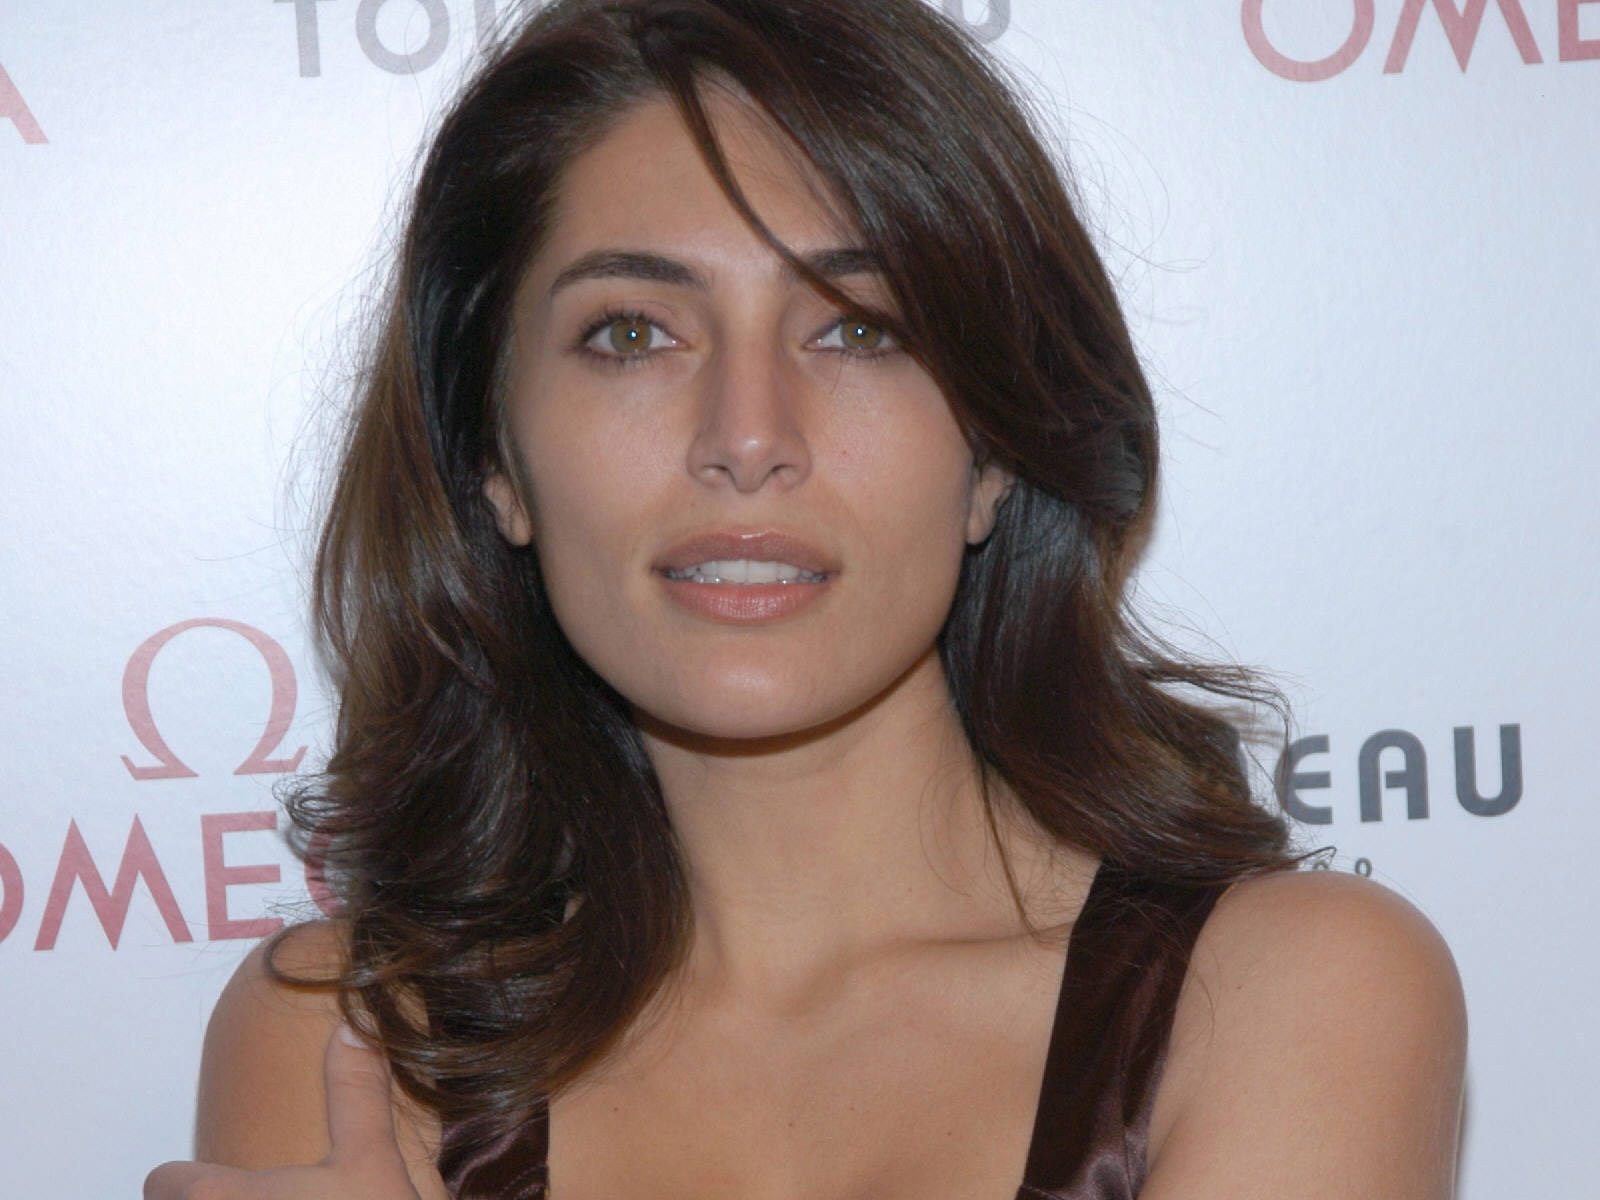 Nice wallpapers Caterina Murino 1600x1200px